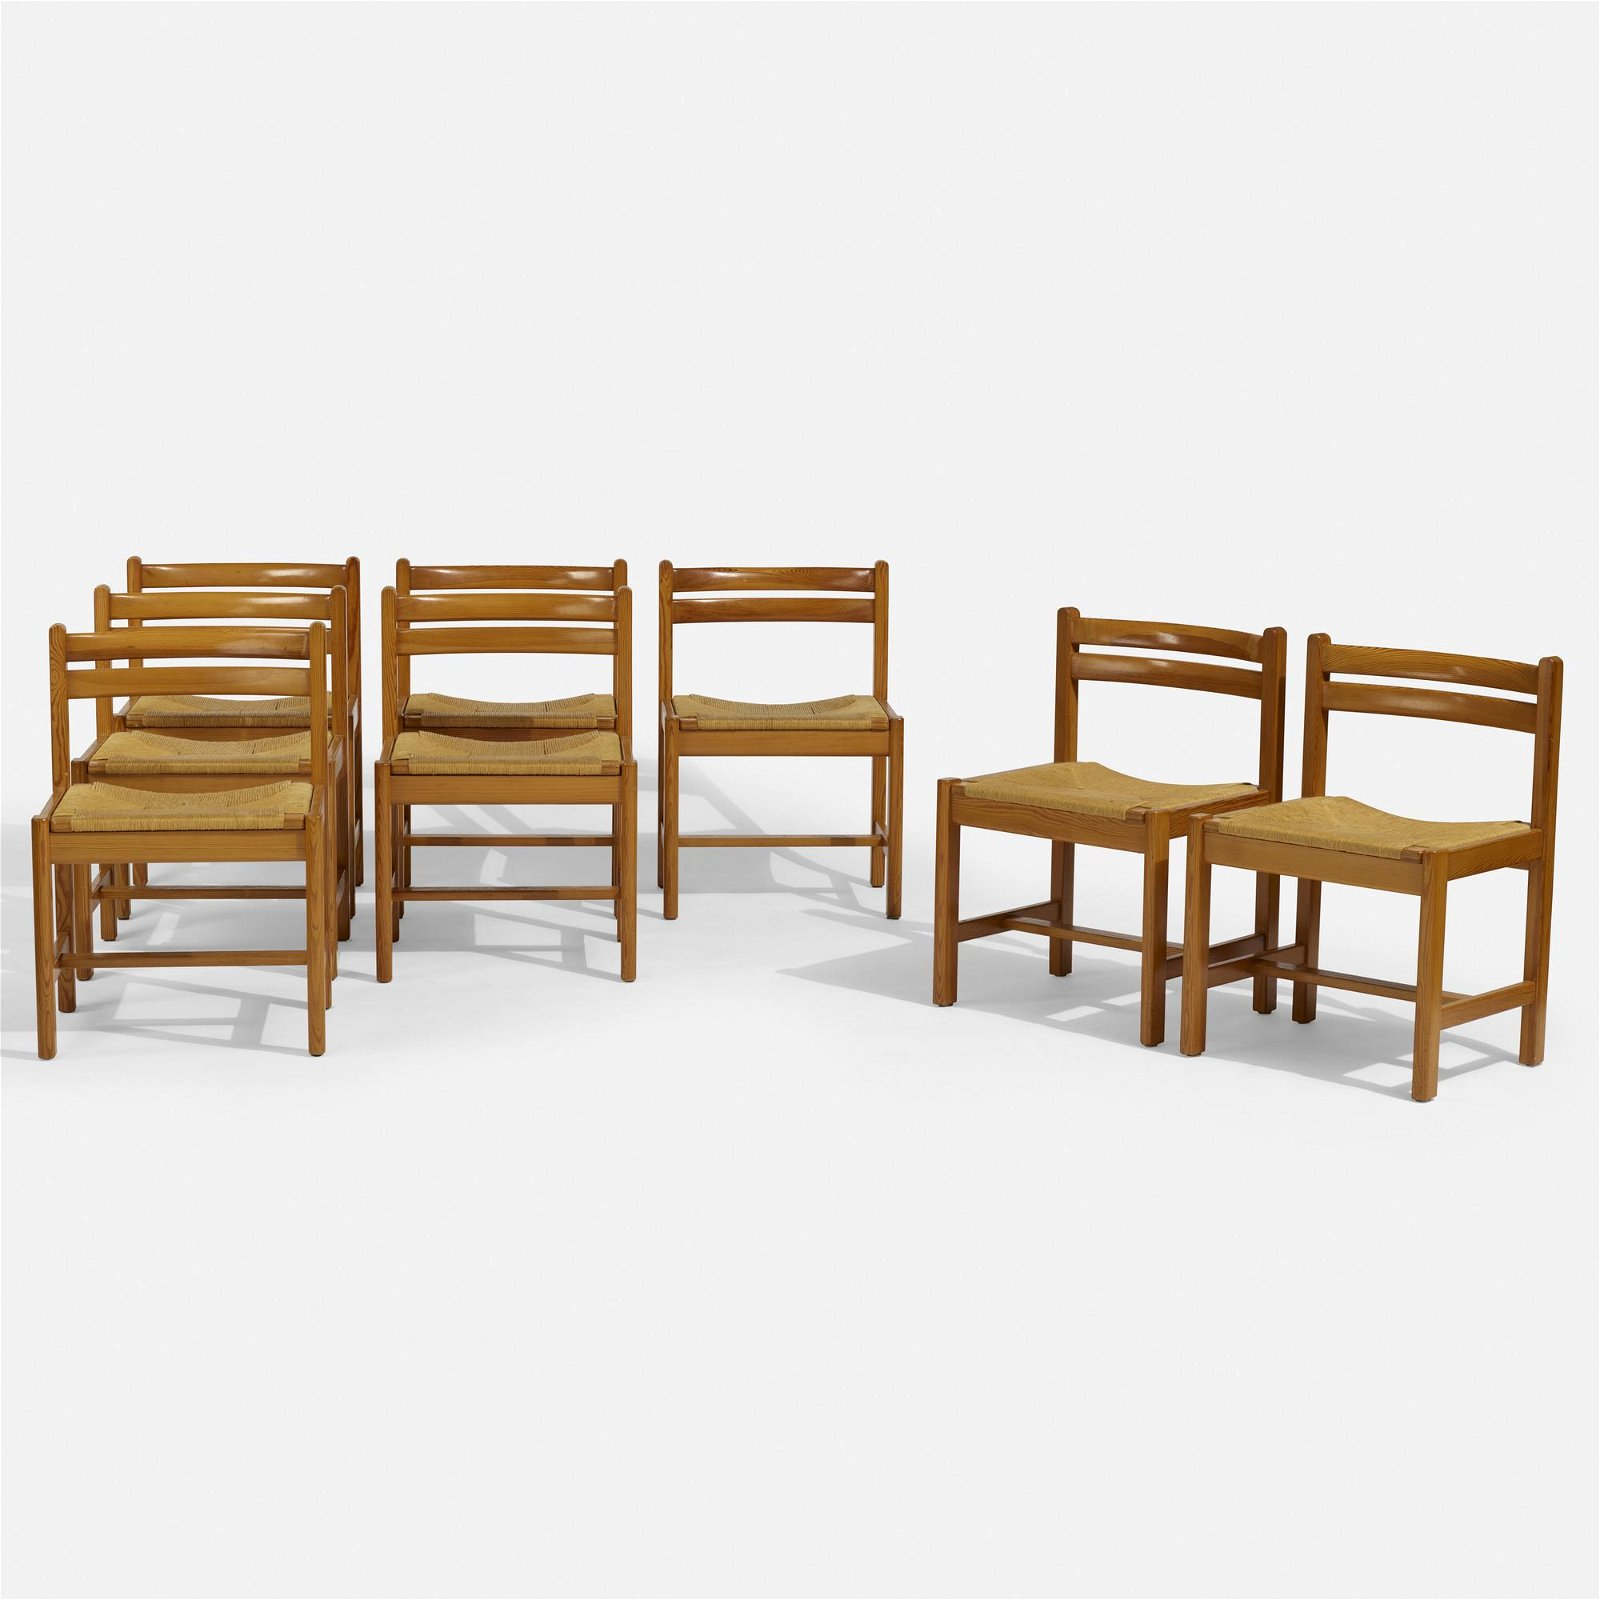 Borge Mogensen, Asserbo dining chairs, set of eight